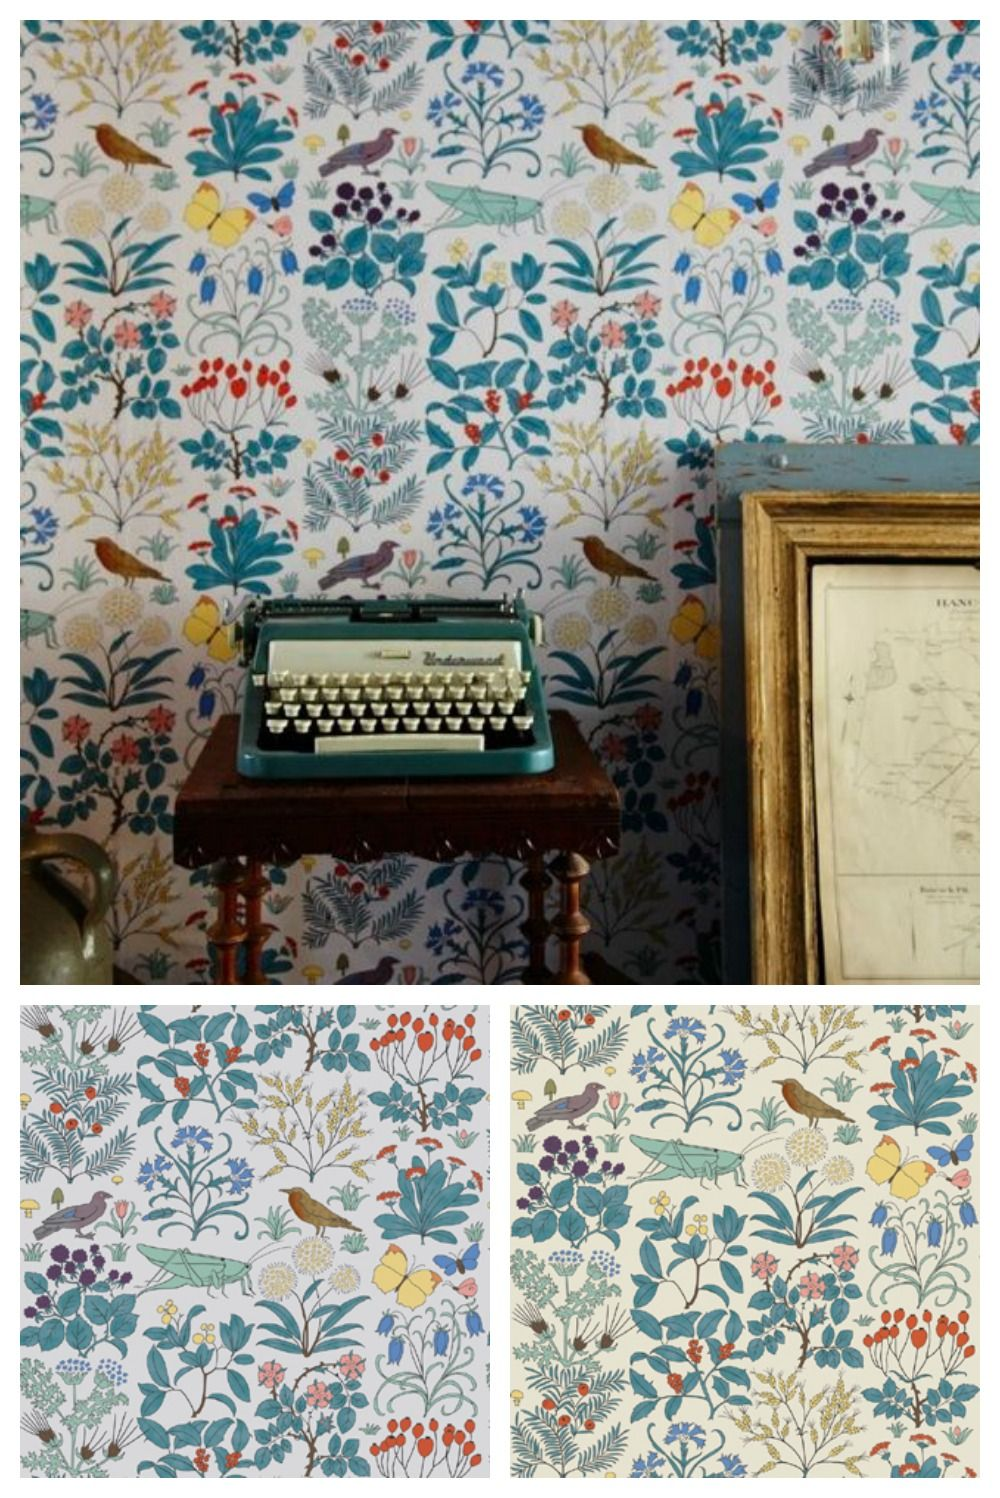 Trustworth Studio's Apothecary's Garden wallpaper floral